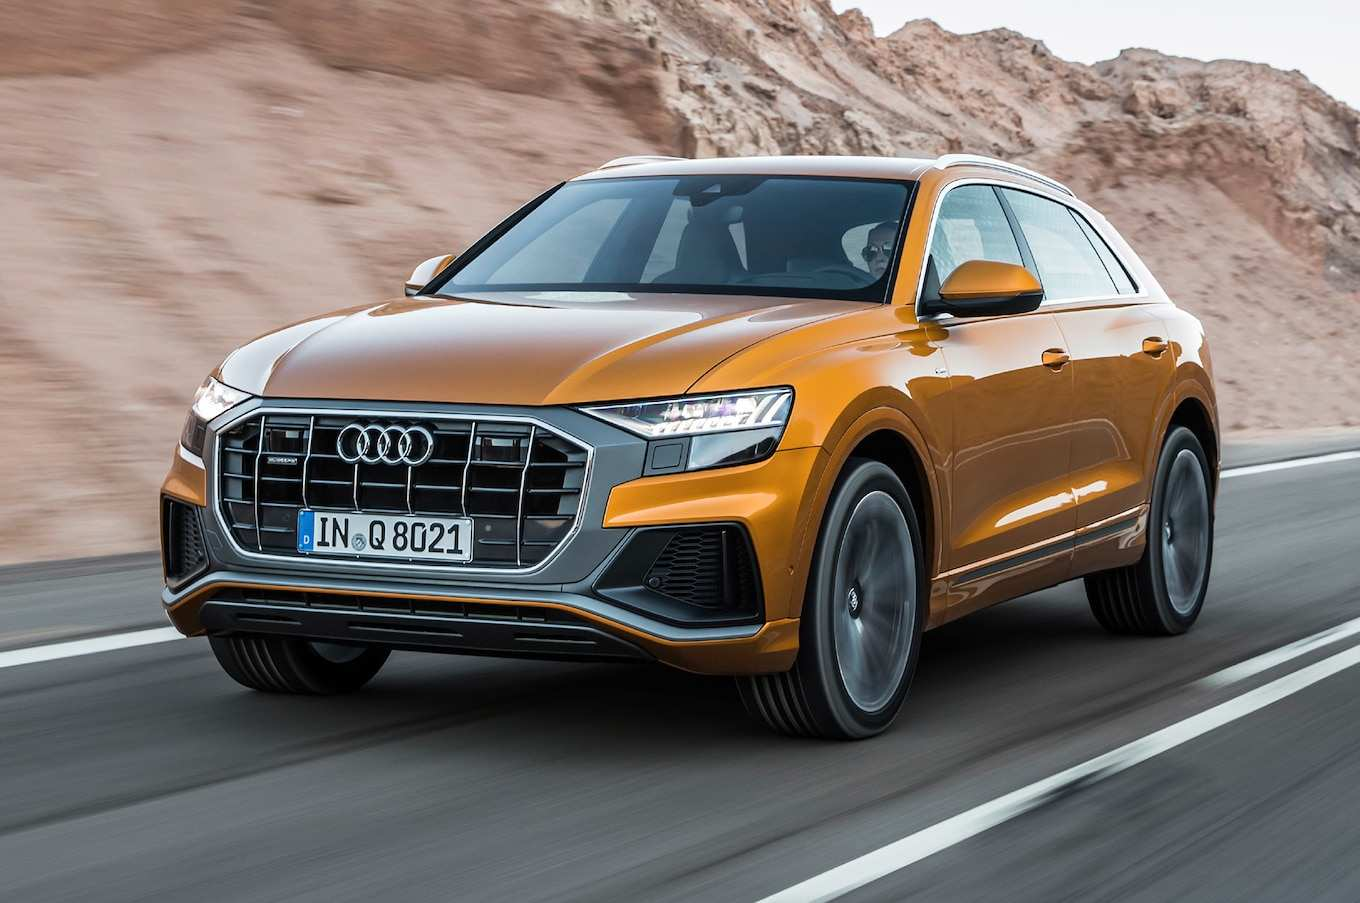 59 All New 2019 Audi Q8Quotes Rumors by 2019 Audi Q8Quotes